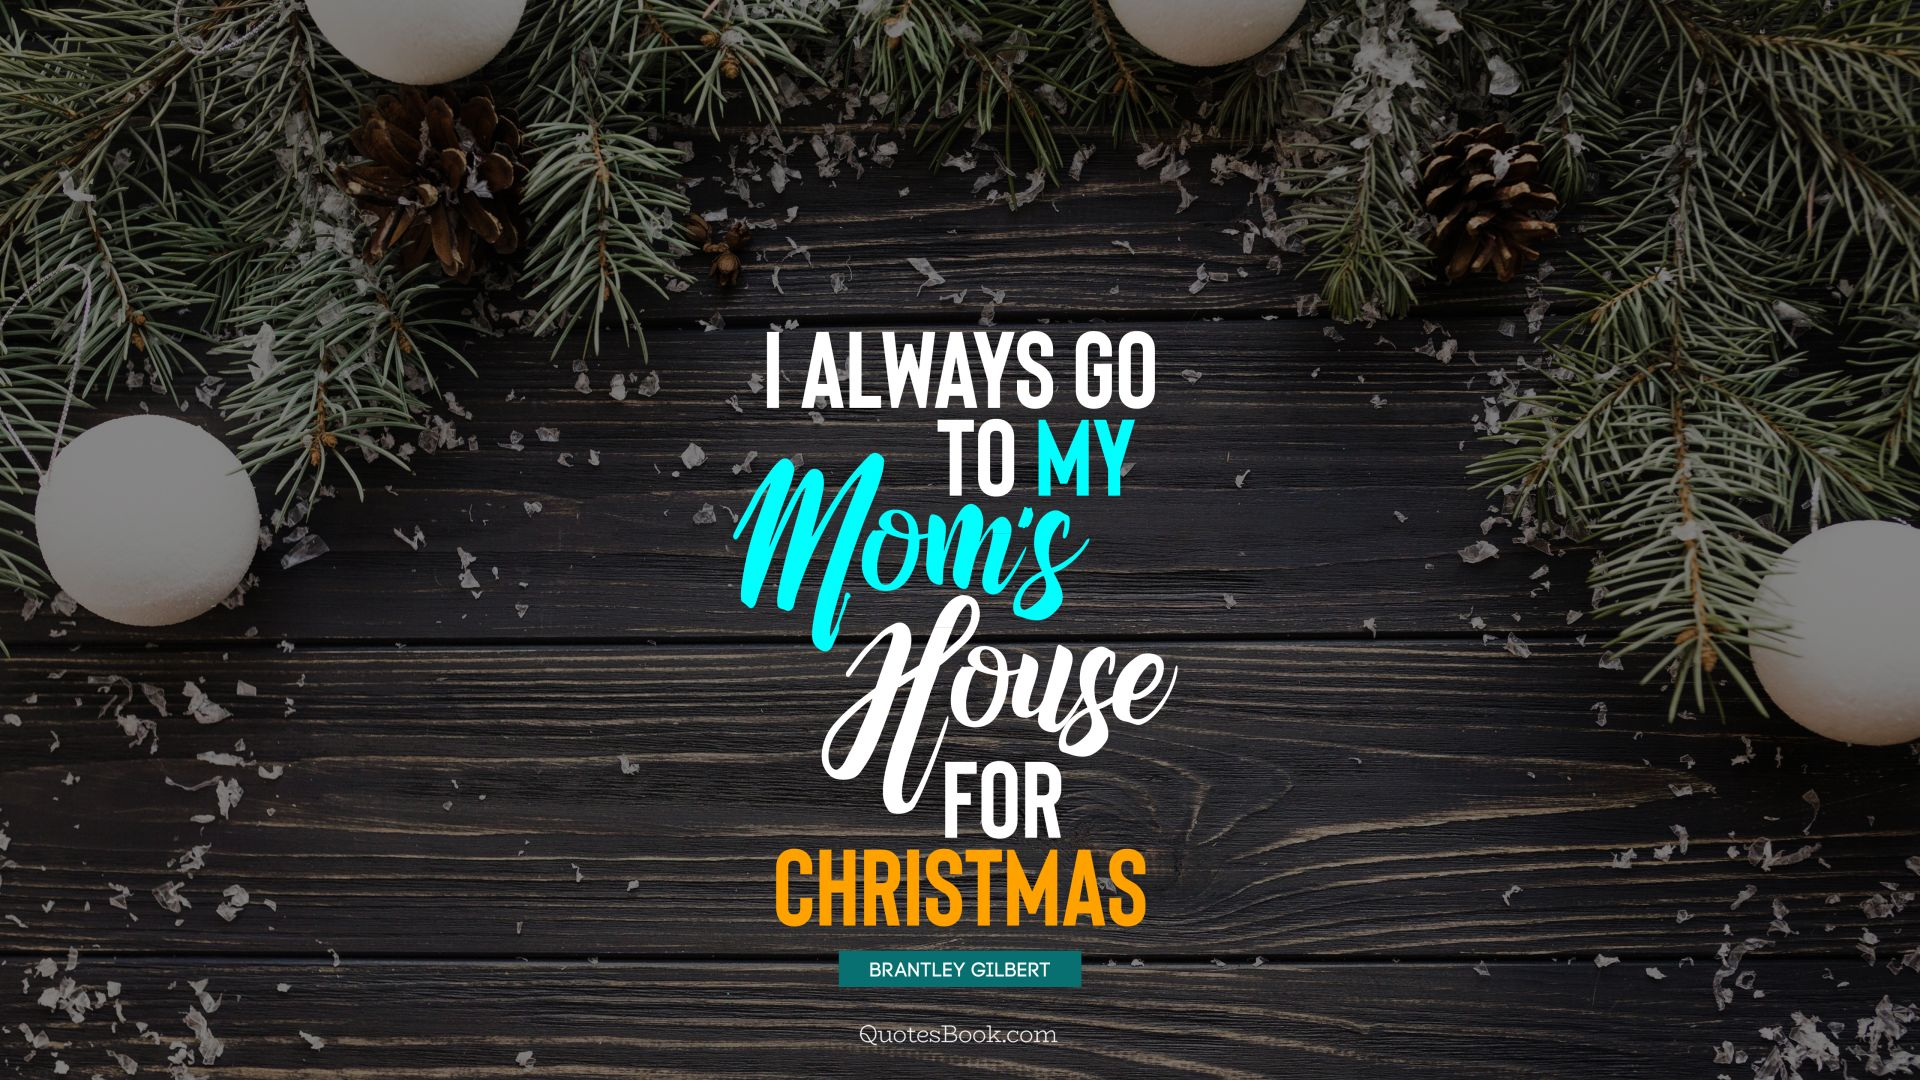 I always go to my mom's house for Christmas. - Quote by Brantley Gilbert